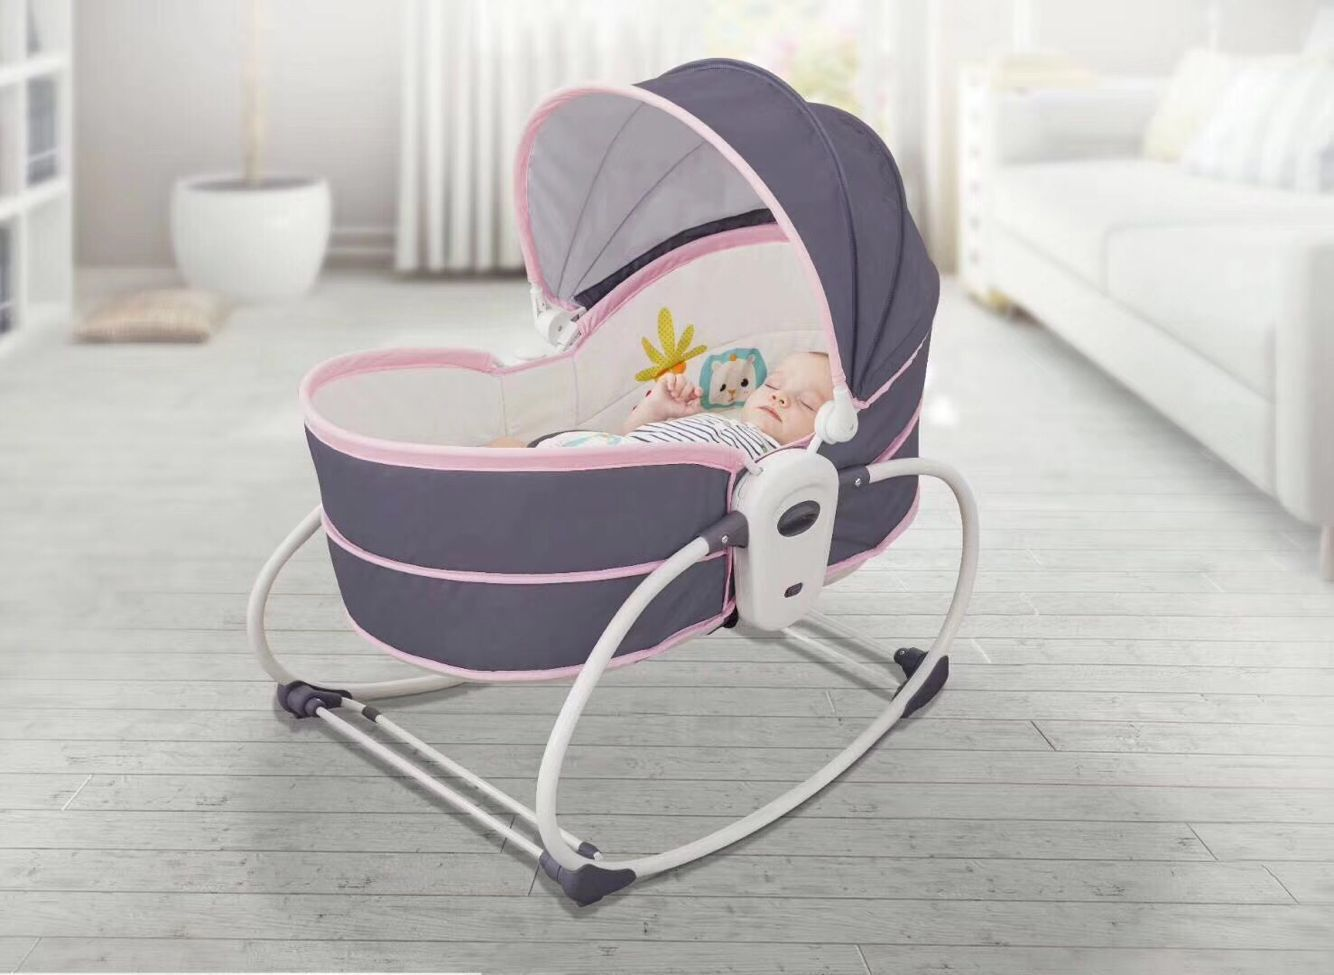 Mastela Five-in-one Electric Rocking Chair , Hand-held Basket For Infants, Crib, Bassinet, Sleeping Basket With Mosquito Net